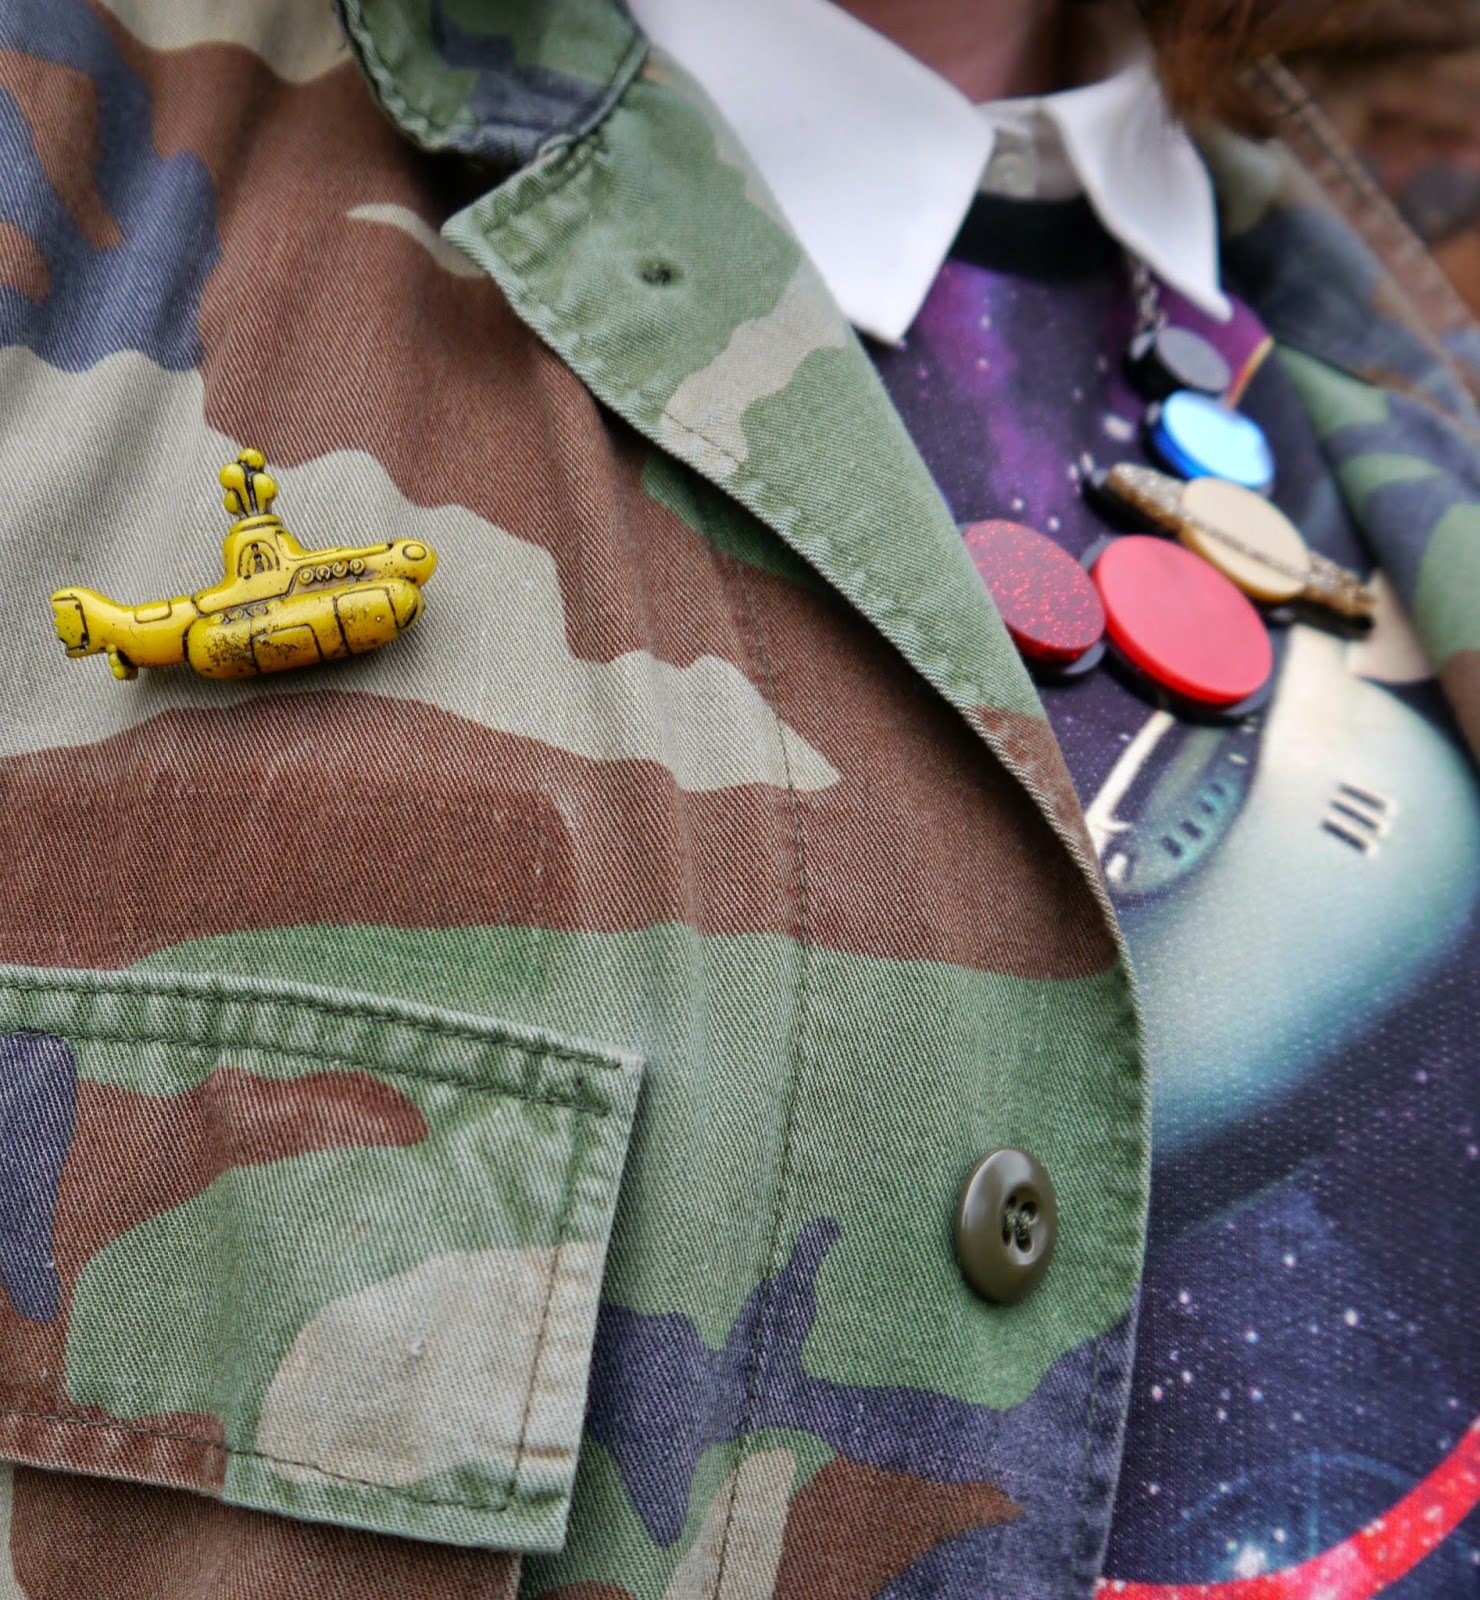 Be Our Guest, Guest Post, Little Sister, Scottish Blogger, Heather Mac, Mac In Your Face, Space Style, Topshop space jumper, Sugar & Vice space necklace, Lunan bay, Red Castle, Scotalnd, outfit post, yellow submarine brooch, Rachel Elliott glass